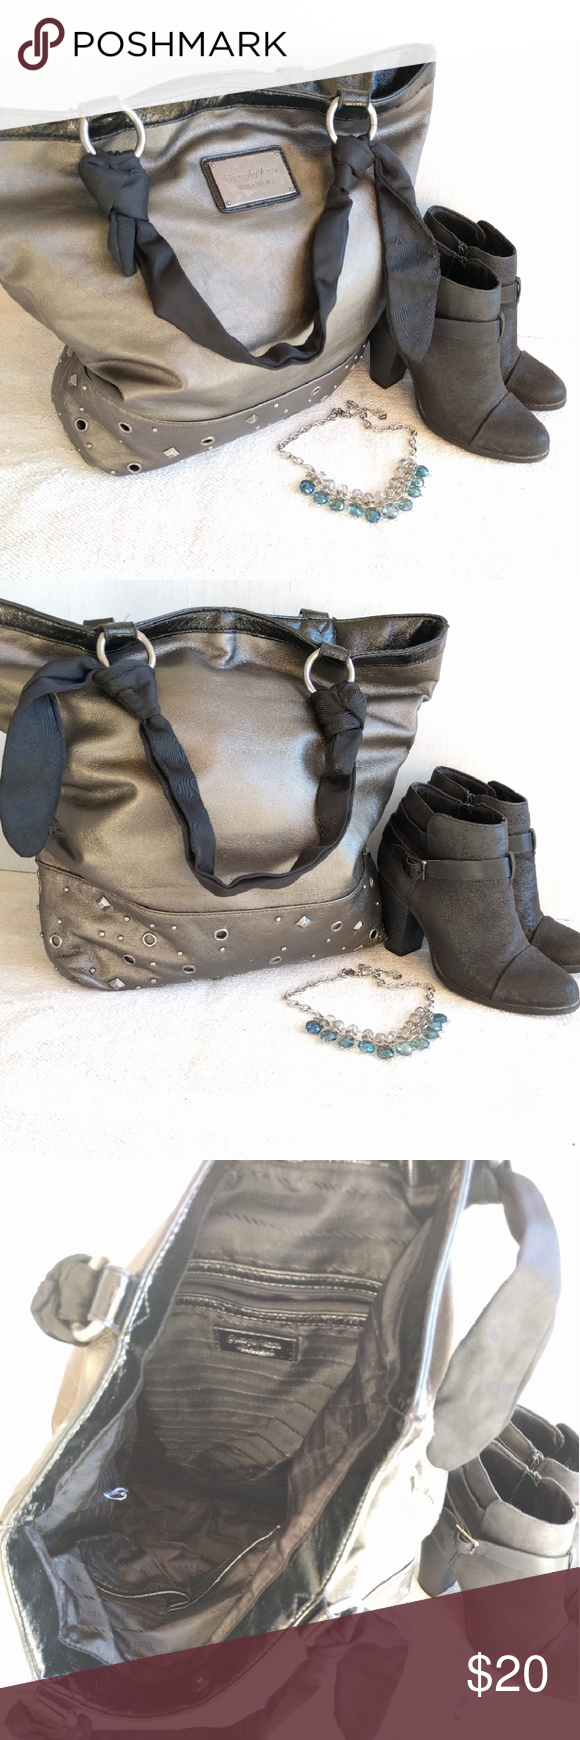 Hcl handcrafted leather goods -  Sale Simply Vera Vera Wang Large Tote Beautiful Gunmetal Faux Leather With Studs And